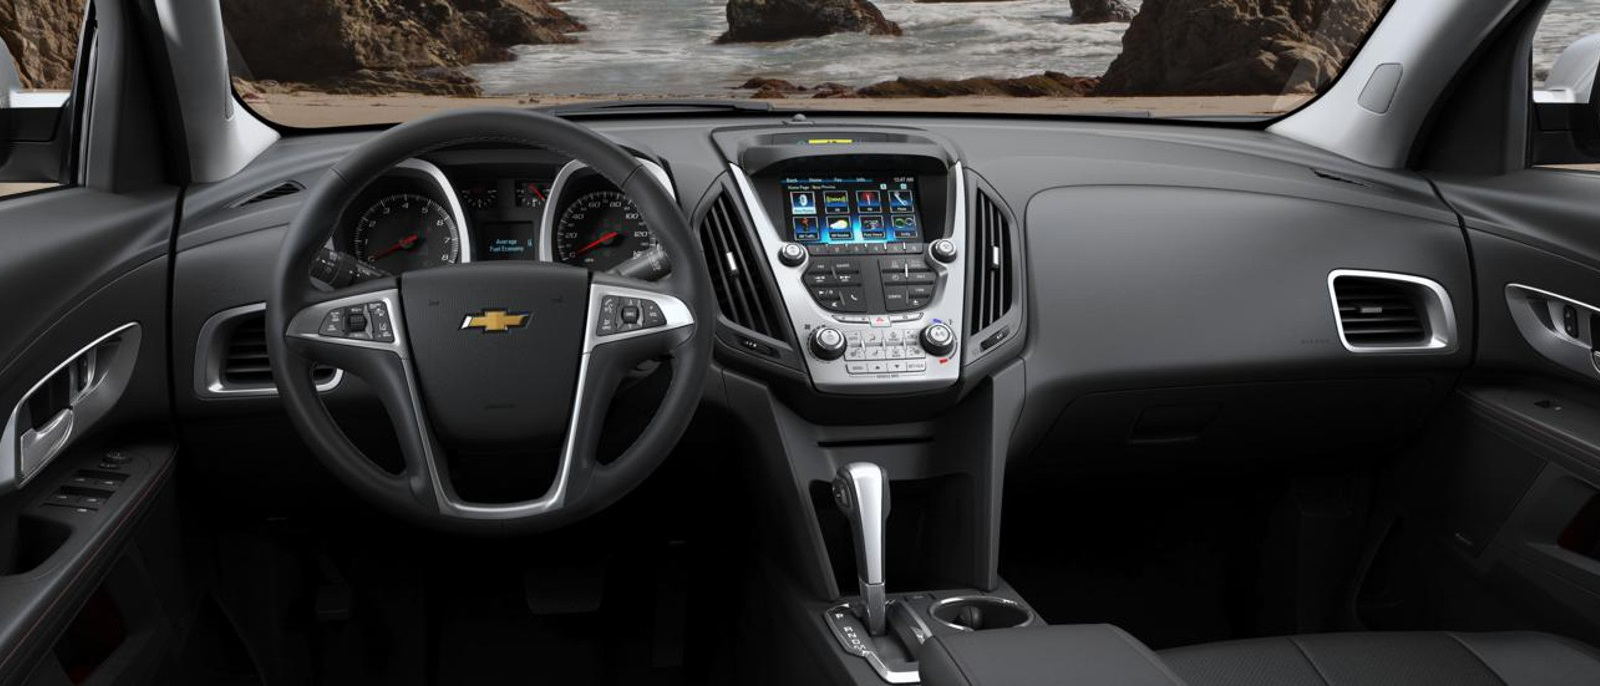 Mike Anderson Chevy >> 2015 Chevrolet Equinox Gary Merrillville | Mike Anderson Chevy